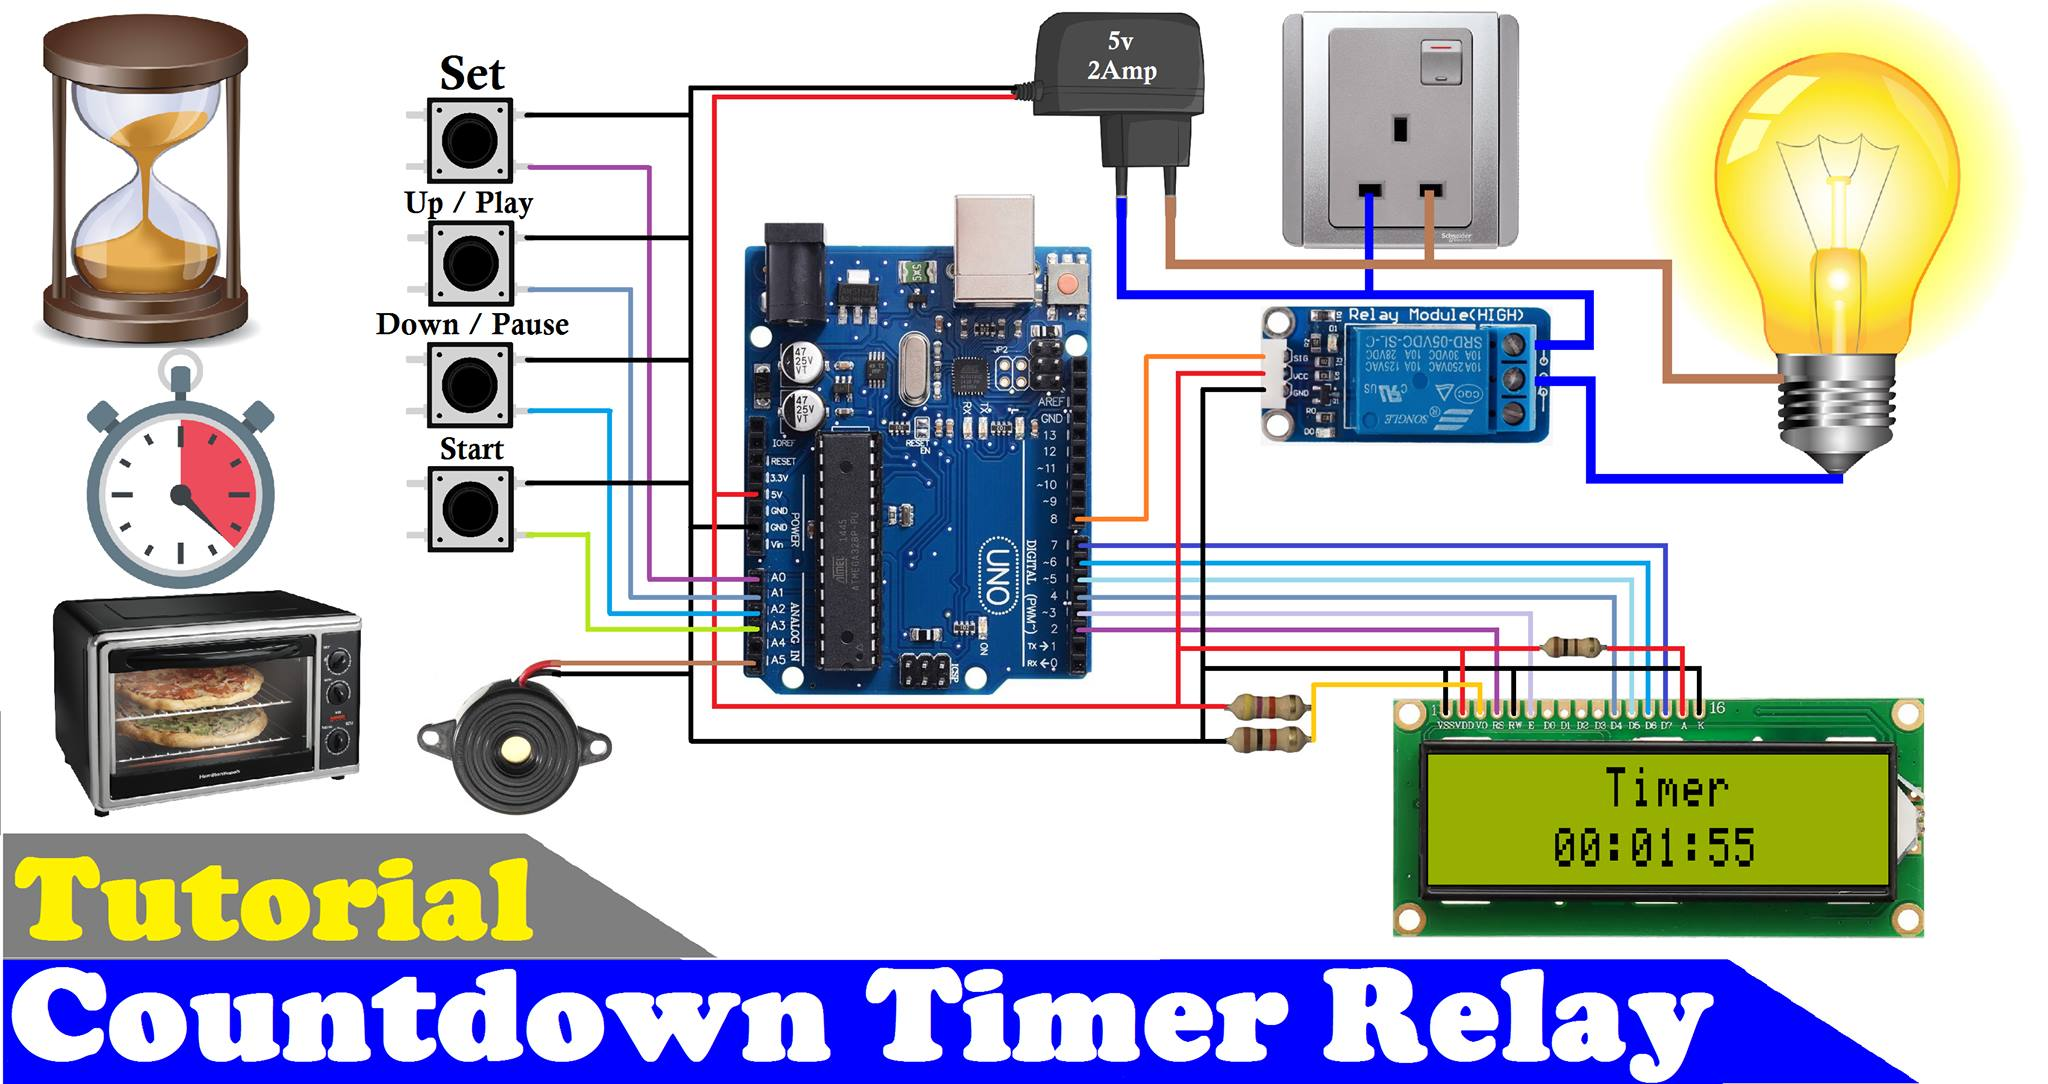 How to make countdown timer relay using arduino and 16x2 lcd display r3otled0j4